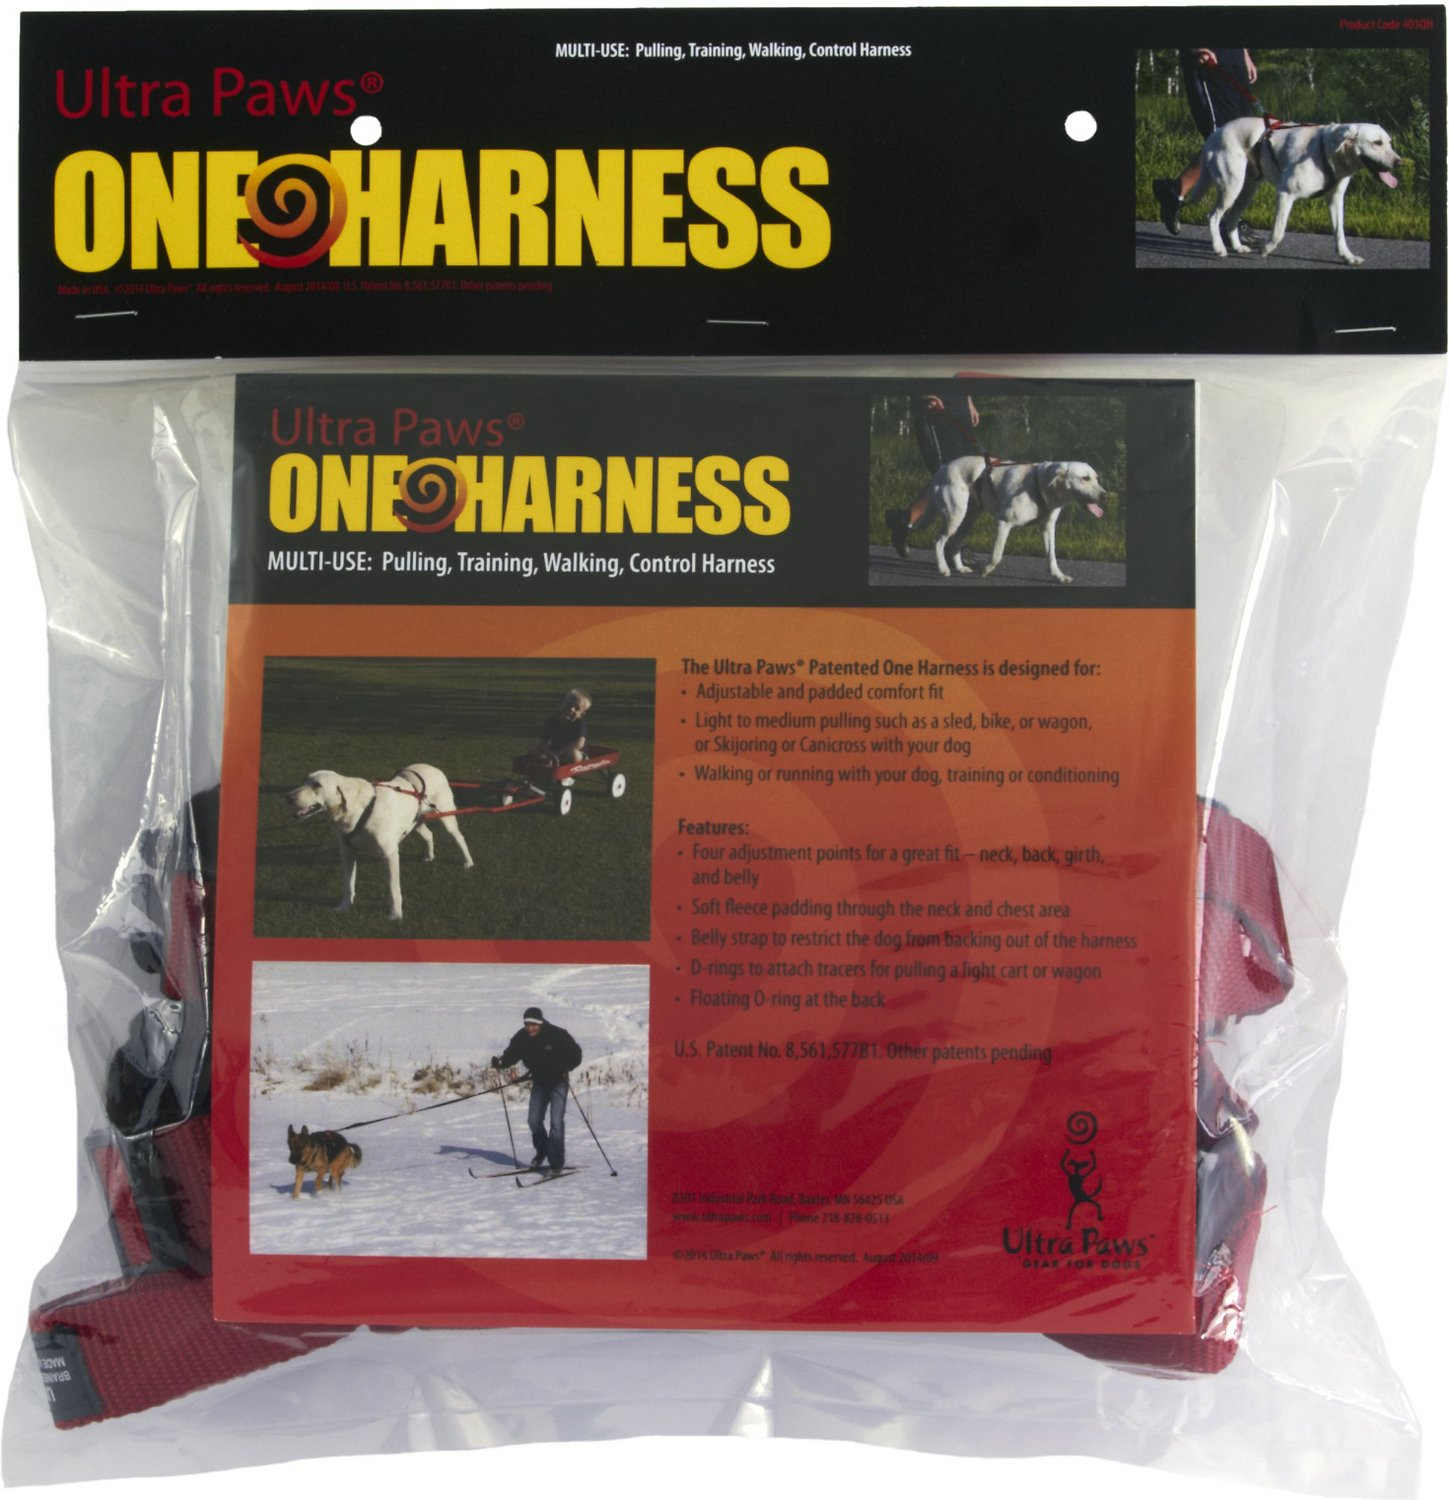 Ultra Paws One Adjustable Pulling Dog Harness, Large - Chewy.com